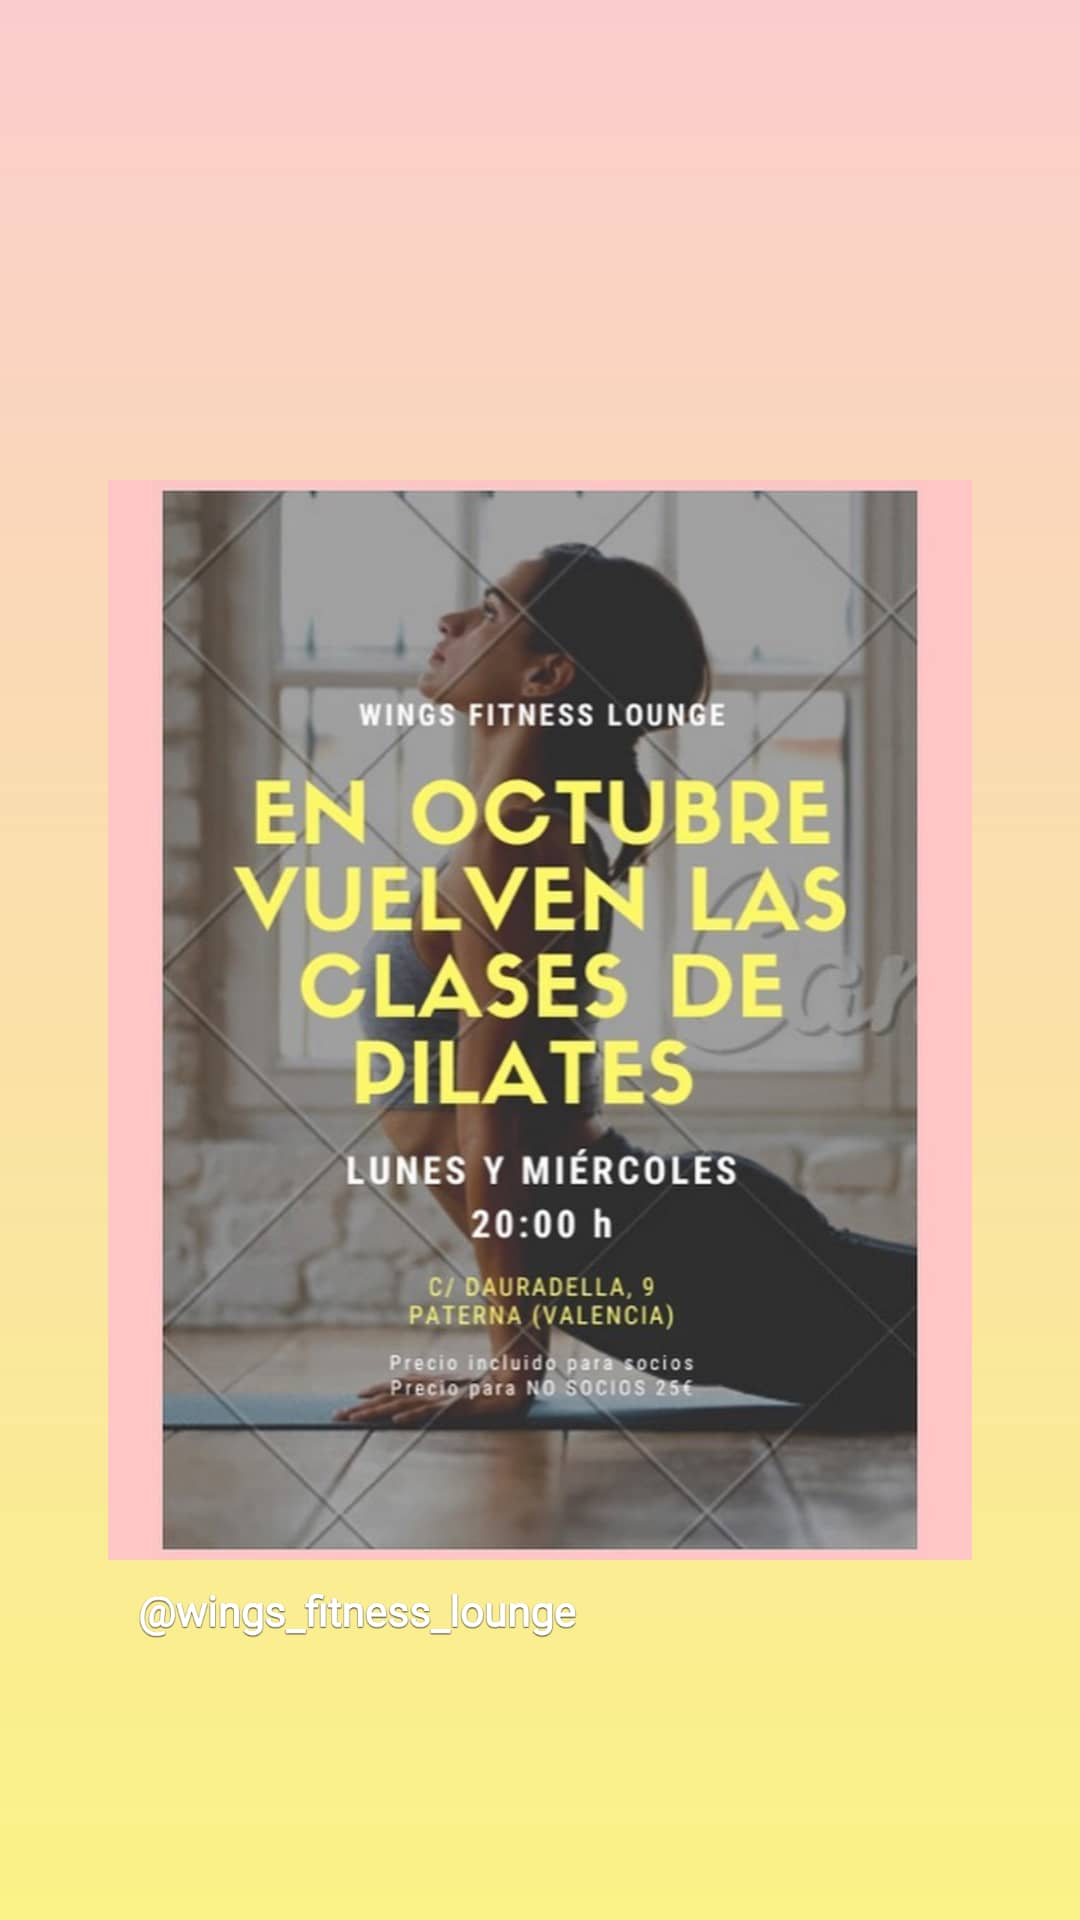 Clases de Pilates - Wings Fitness Lounge Valterna